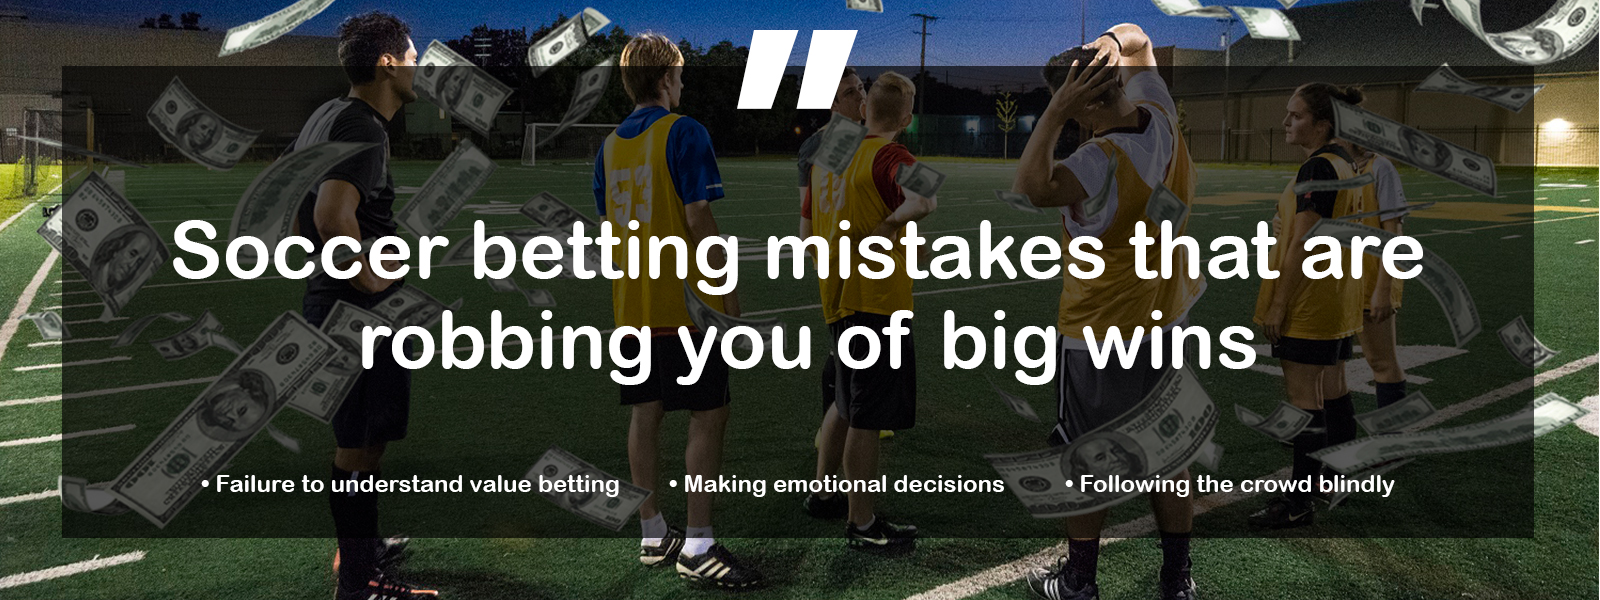 Top 3 Soccer Betting Mistakes You Should Avoid